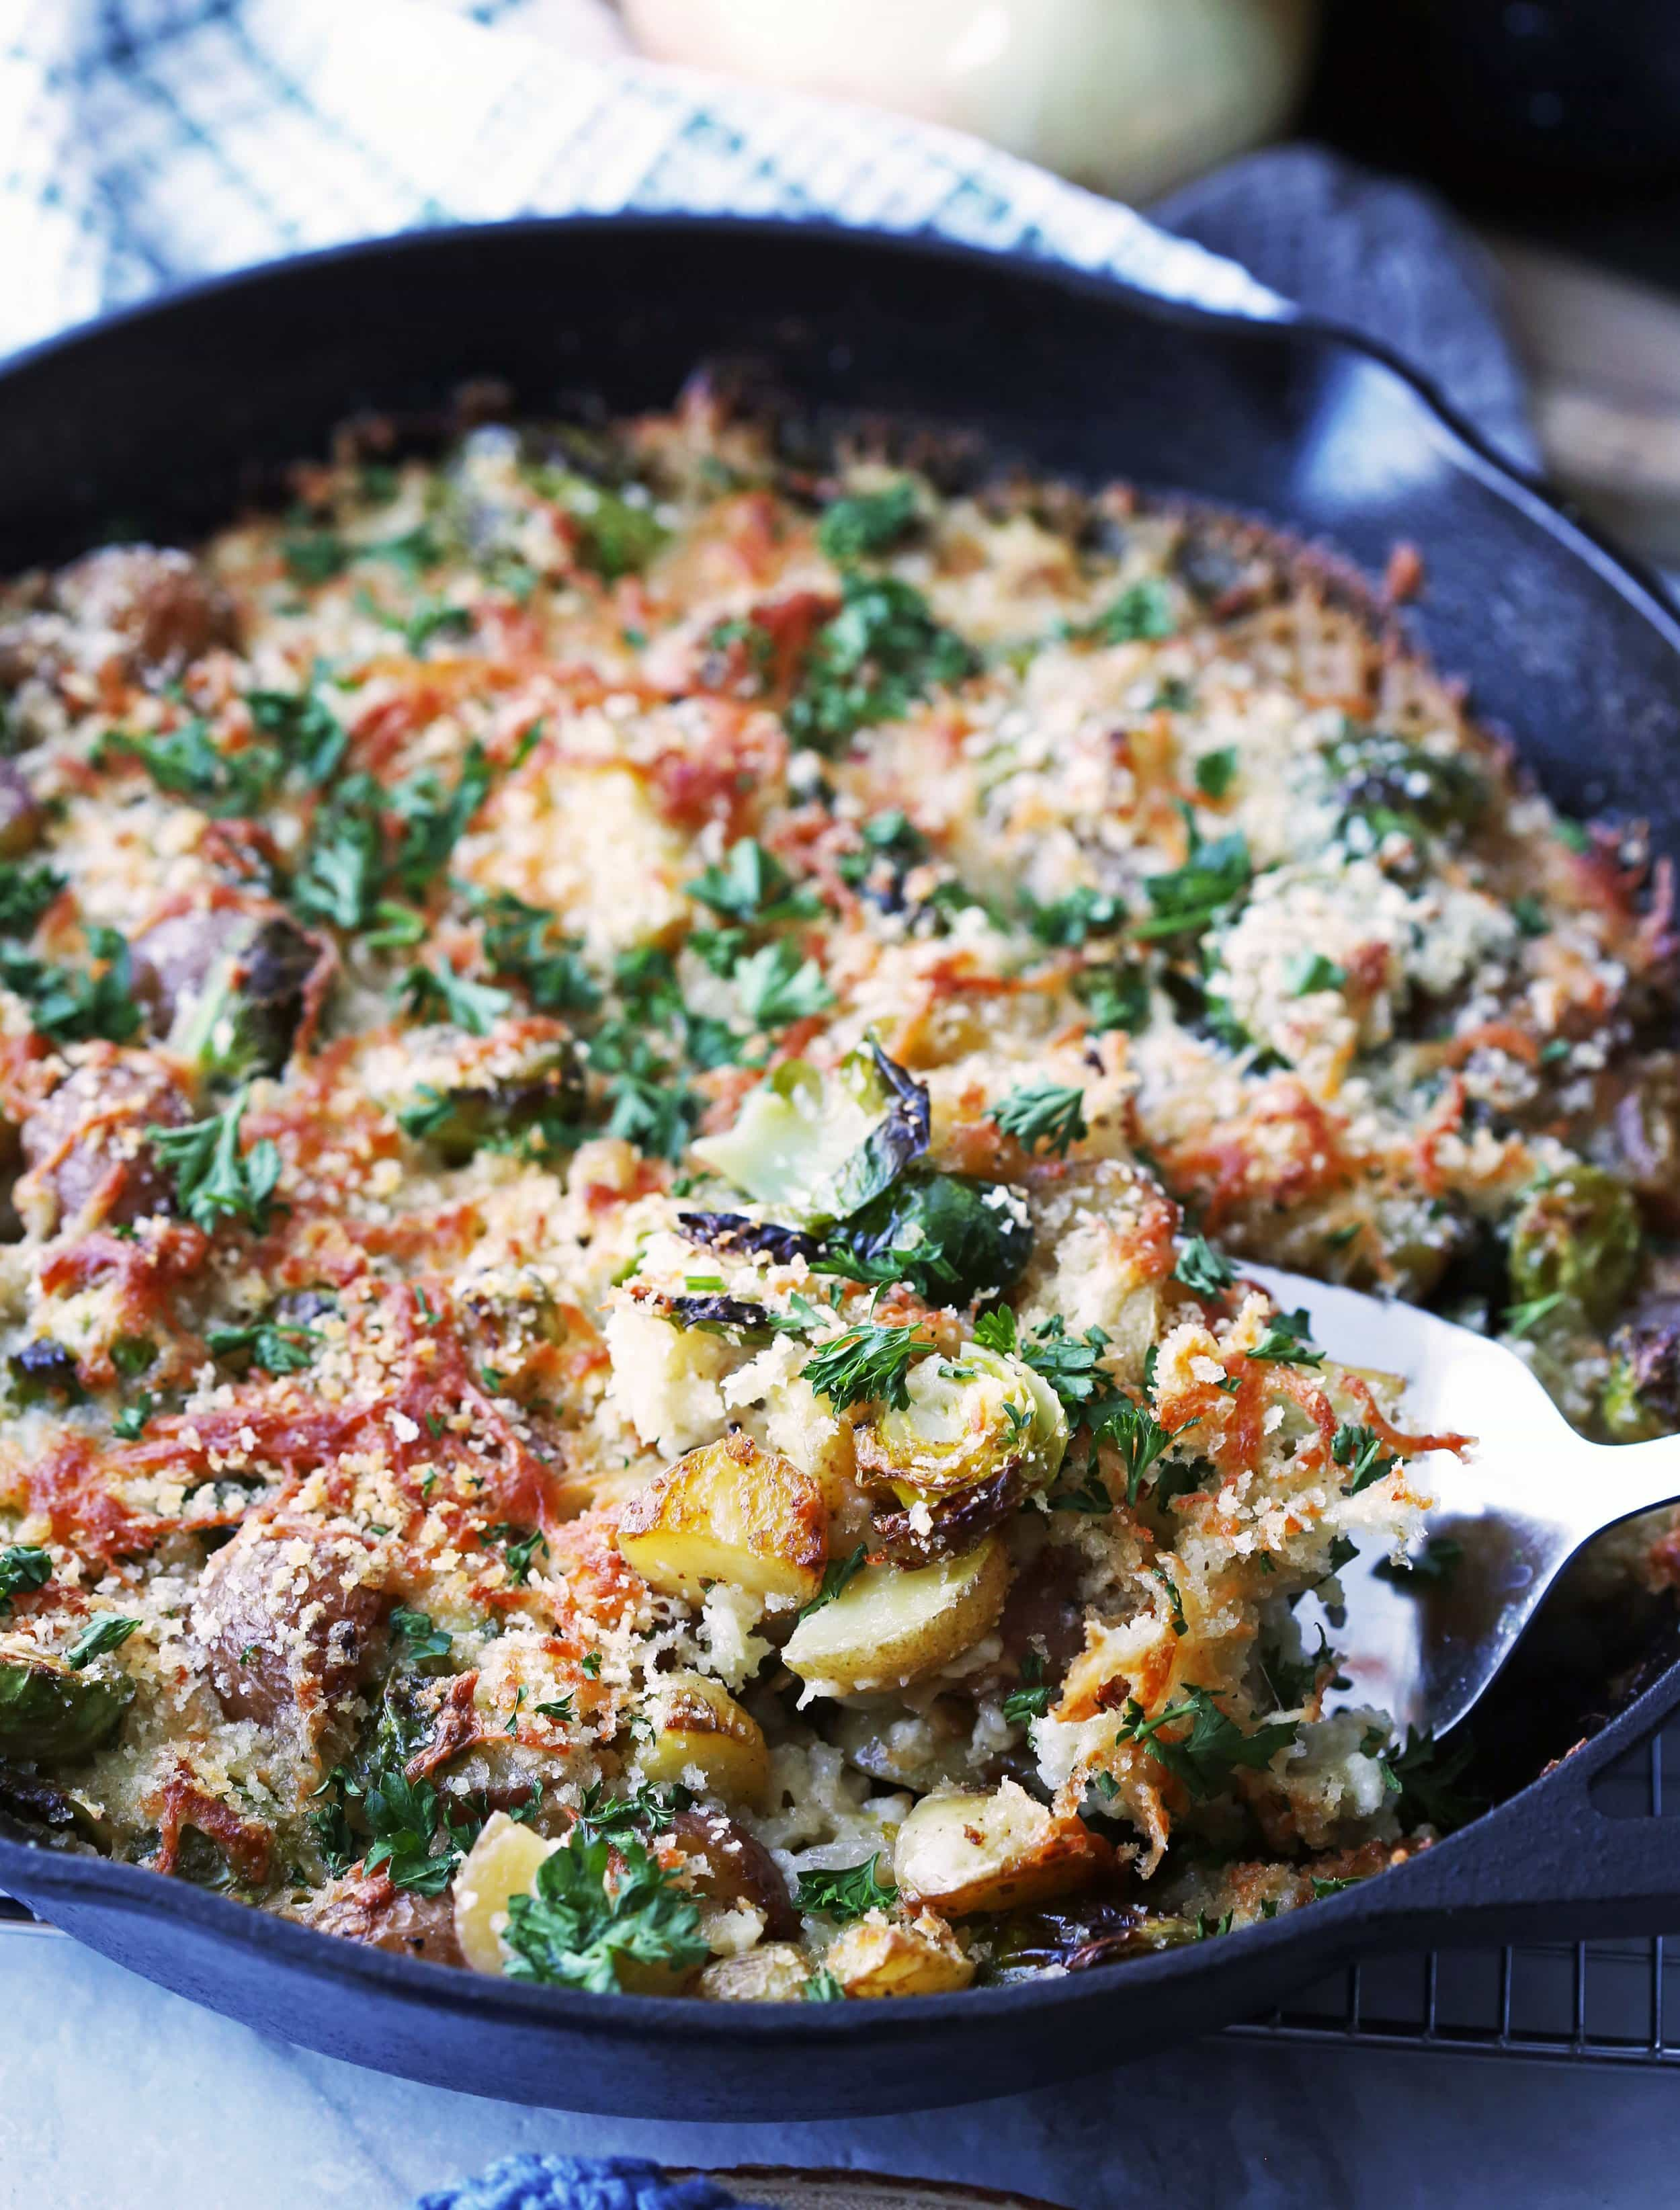 Baked Brussels Sprouts and Potato Gratin topped with crispy melted cheese, breadcrumbs, and parsley in a large cast iron skillet.